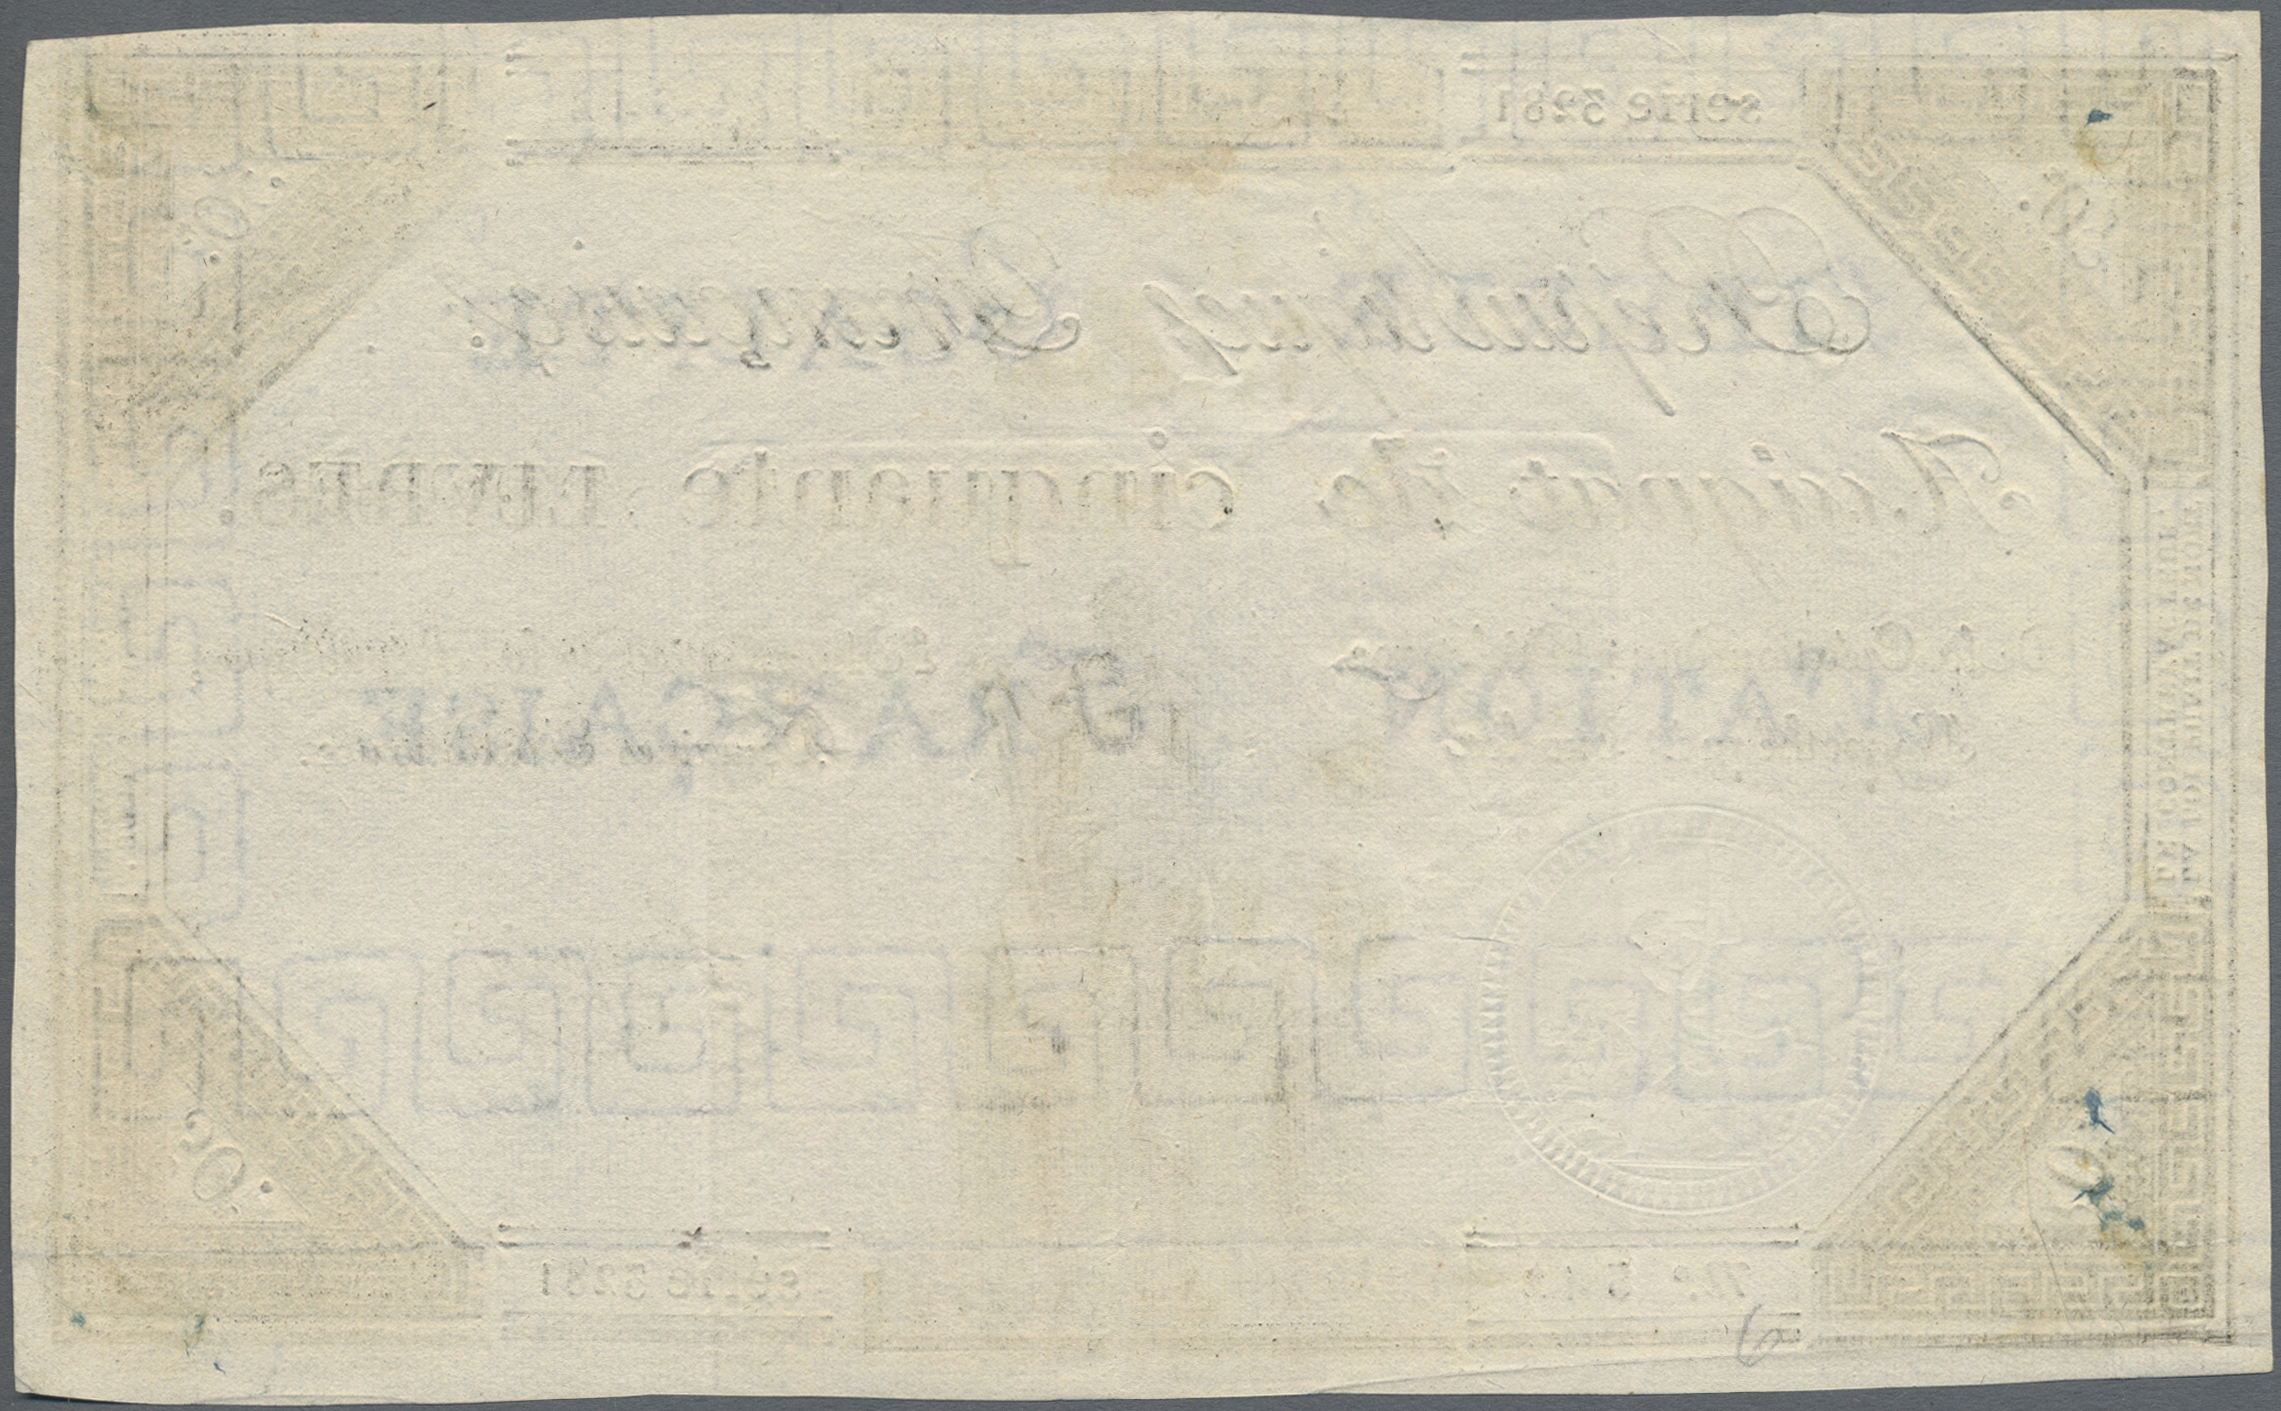 Lot 00267 - France / Frankreich | Banknoten  -  Auktionshaus Christoph Gärtner GmbH & Co. KG Sale #48 The Banknotes